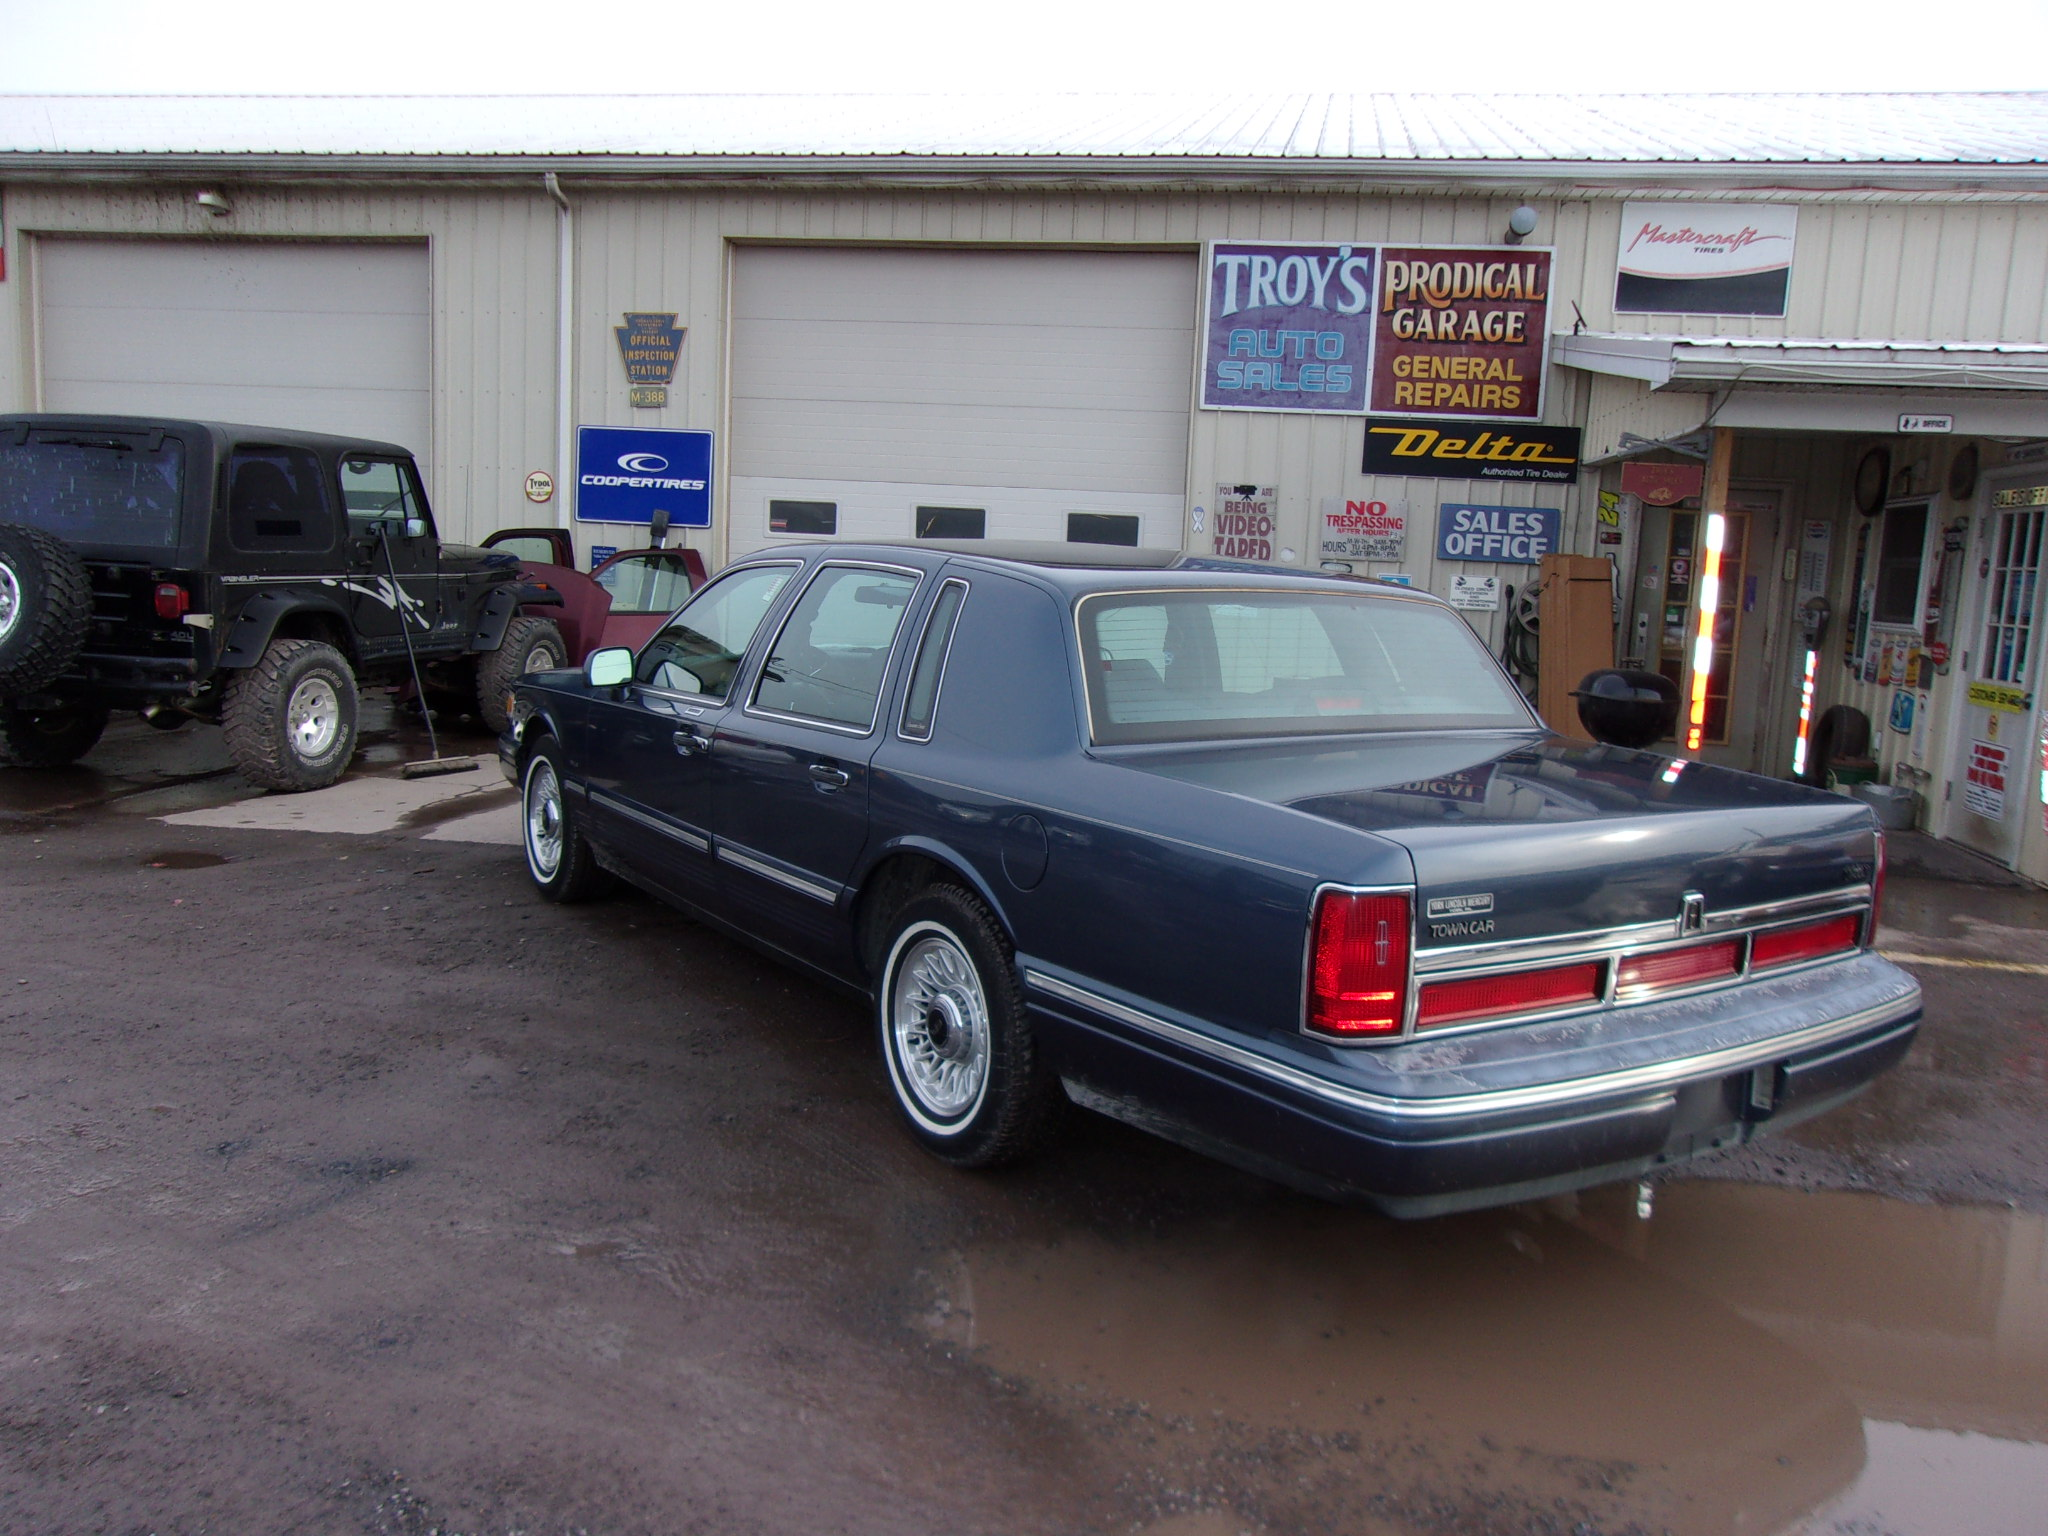 1996 Lincoln Town Car Troy s Auto Sales Inc